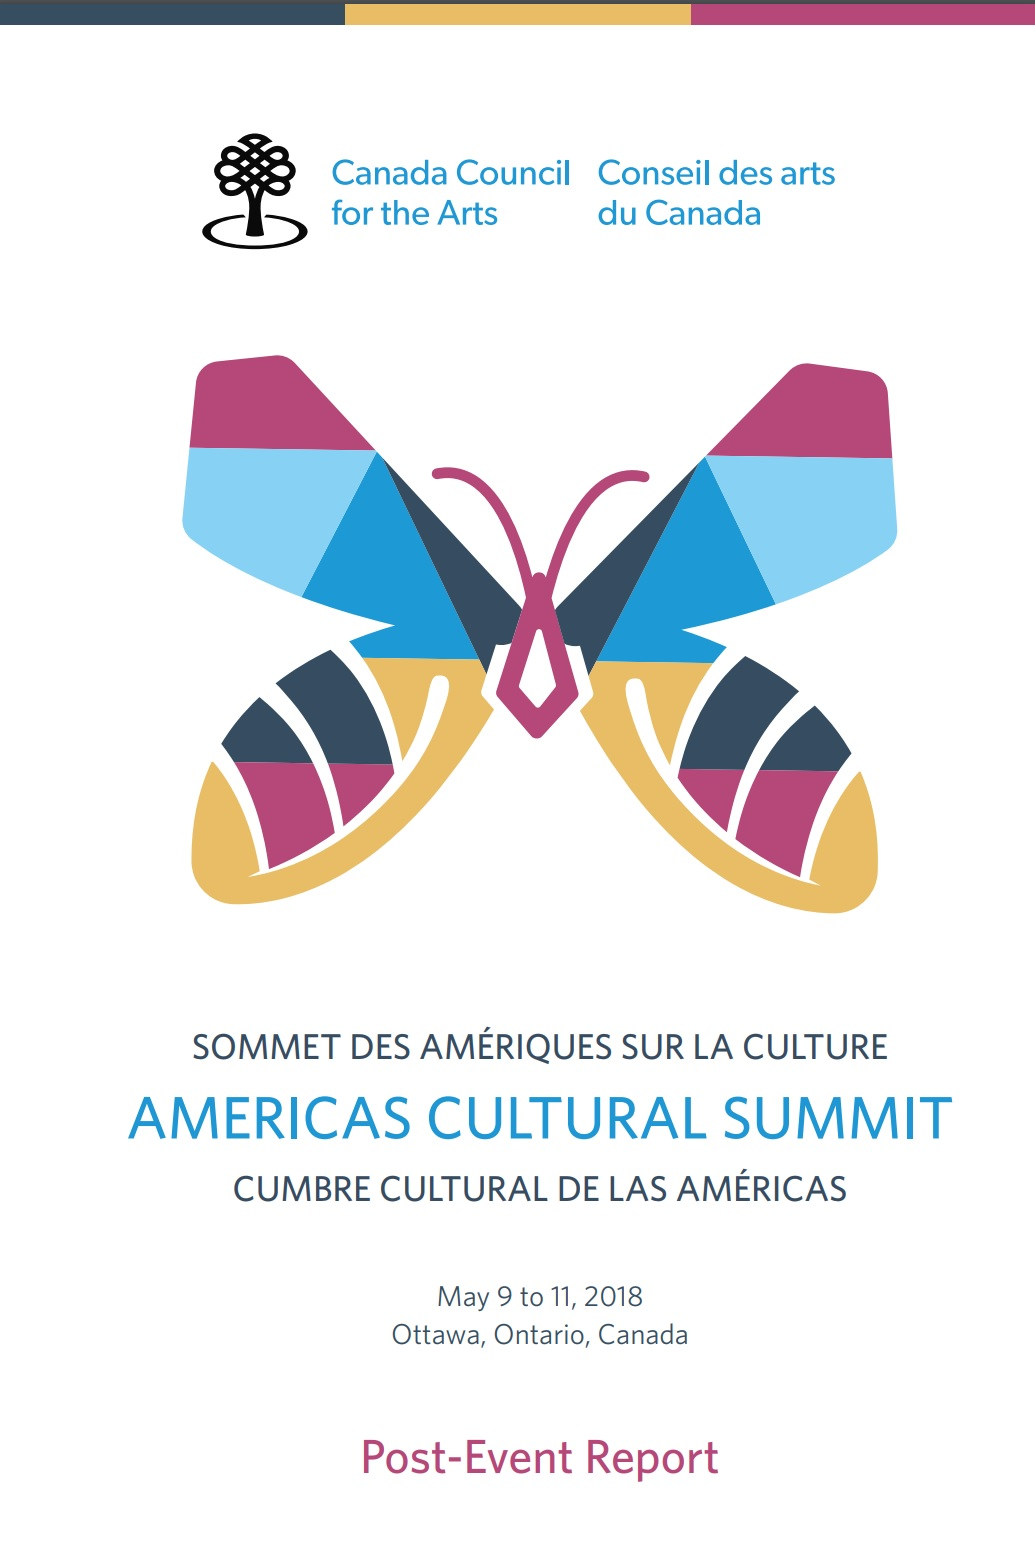 Americas Summit Report in English